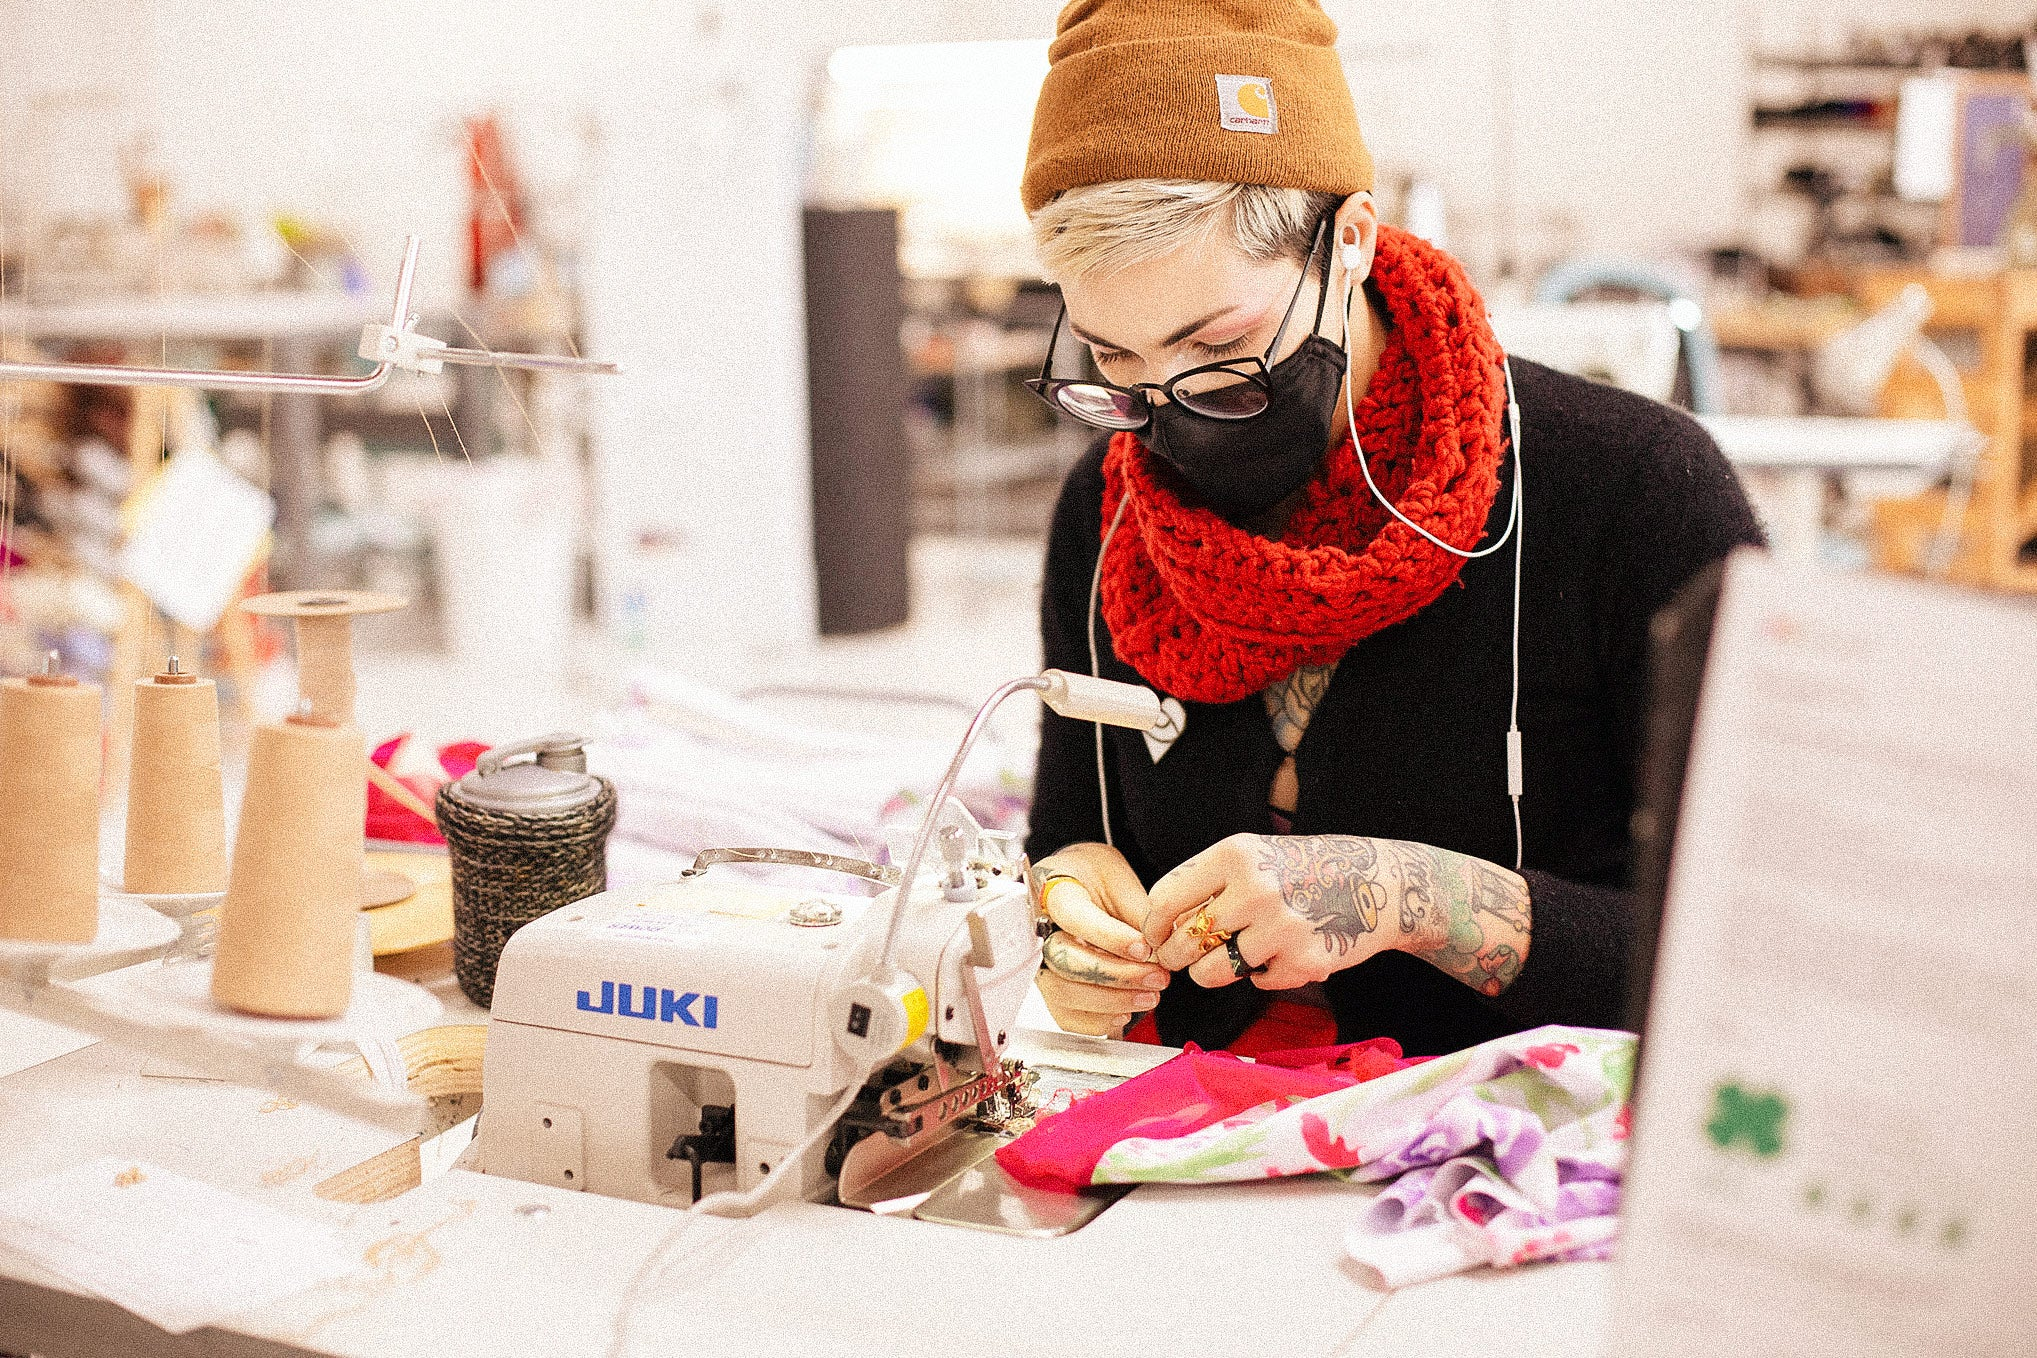 A sewist wearing a face mask, glasses and a red scarf sits at her sewing machine with fabric in her hands.